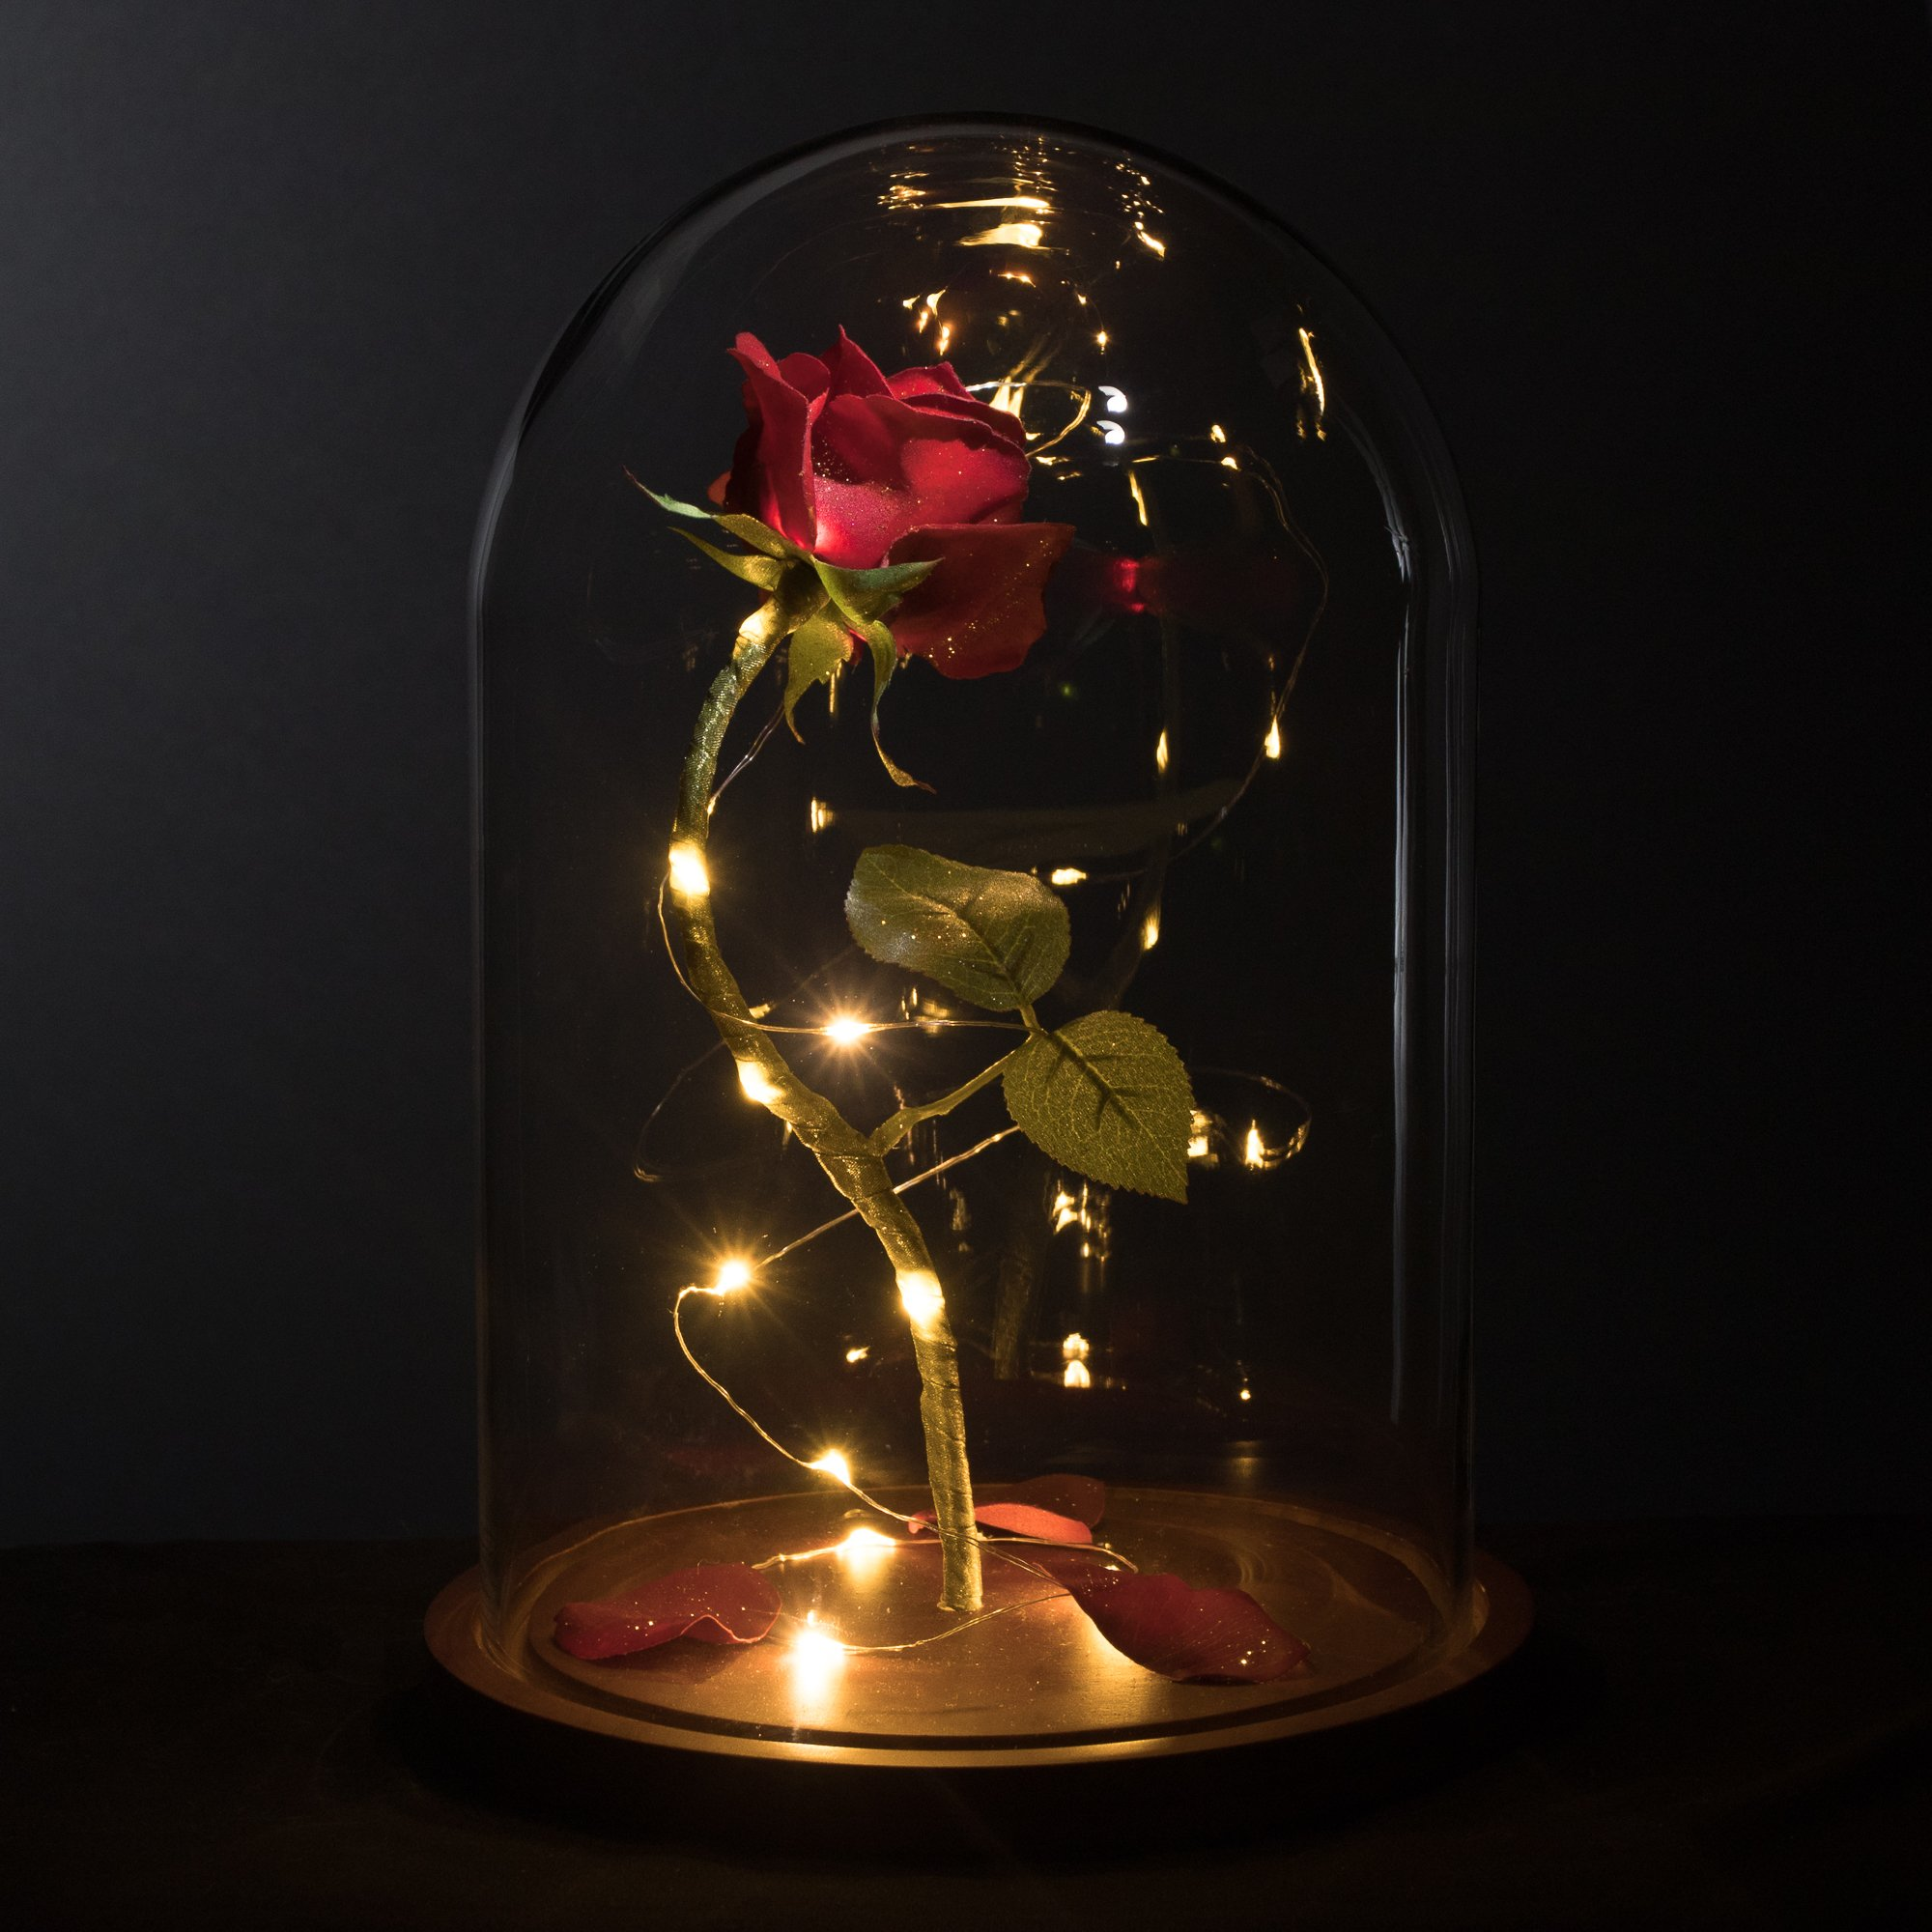 Life-Sized 13'' Enchanted Rose that Lasts Forever in Glass Dome Inspired By Disney Beauty and the Beast Belle by MagicPrincessWhitney Magic Princess Whitney